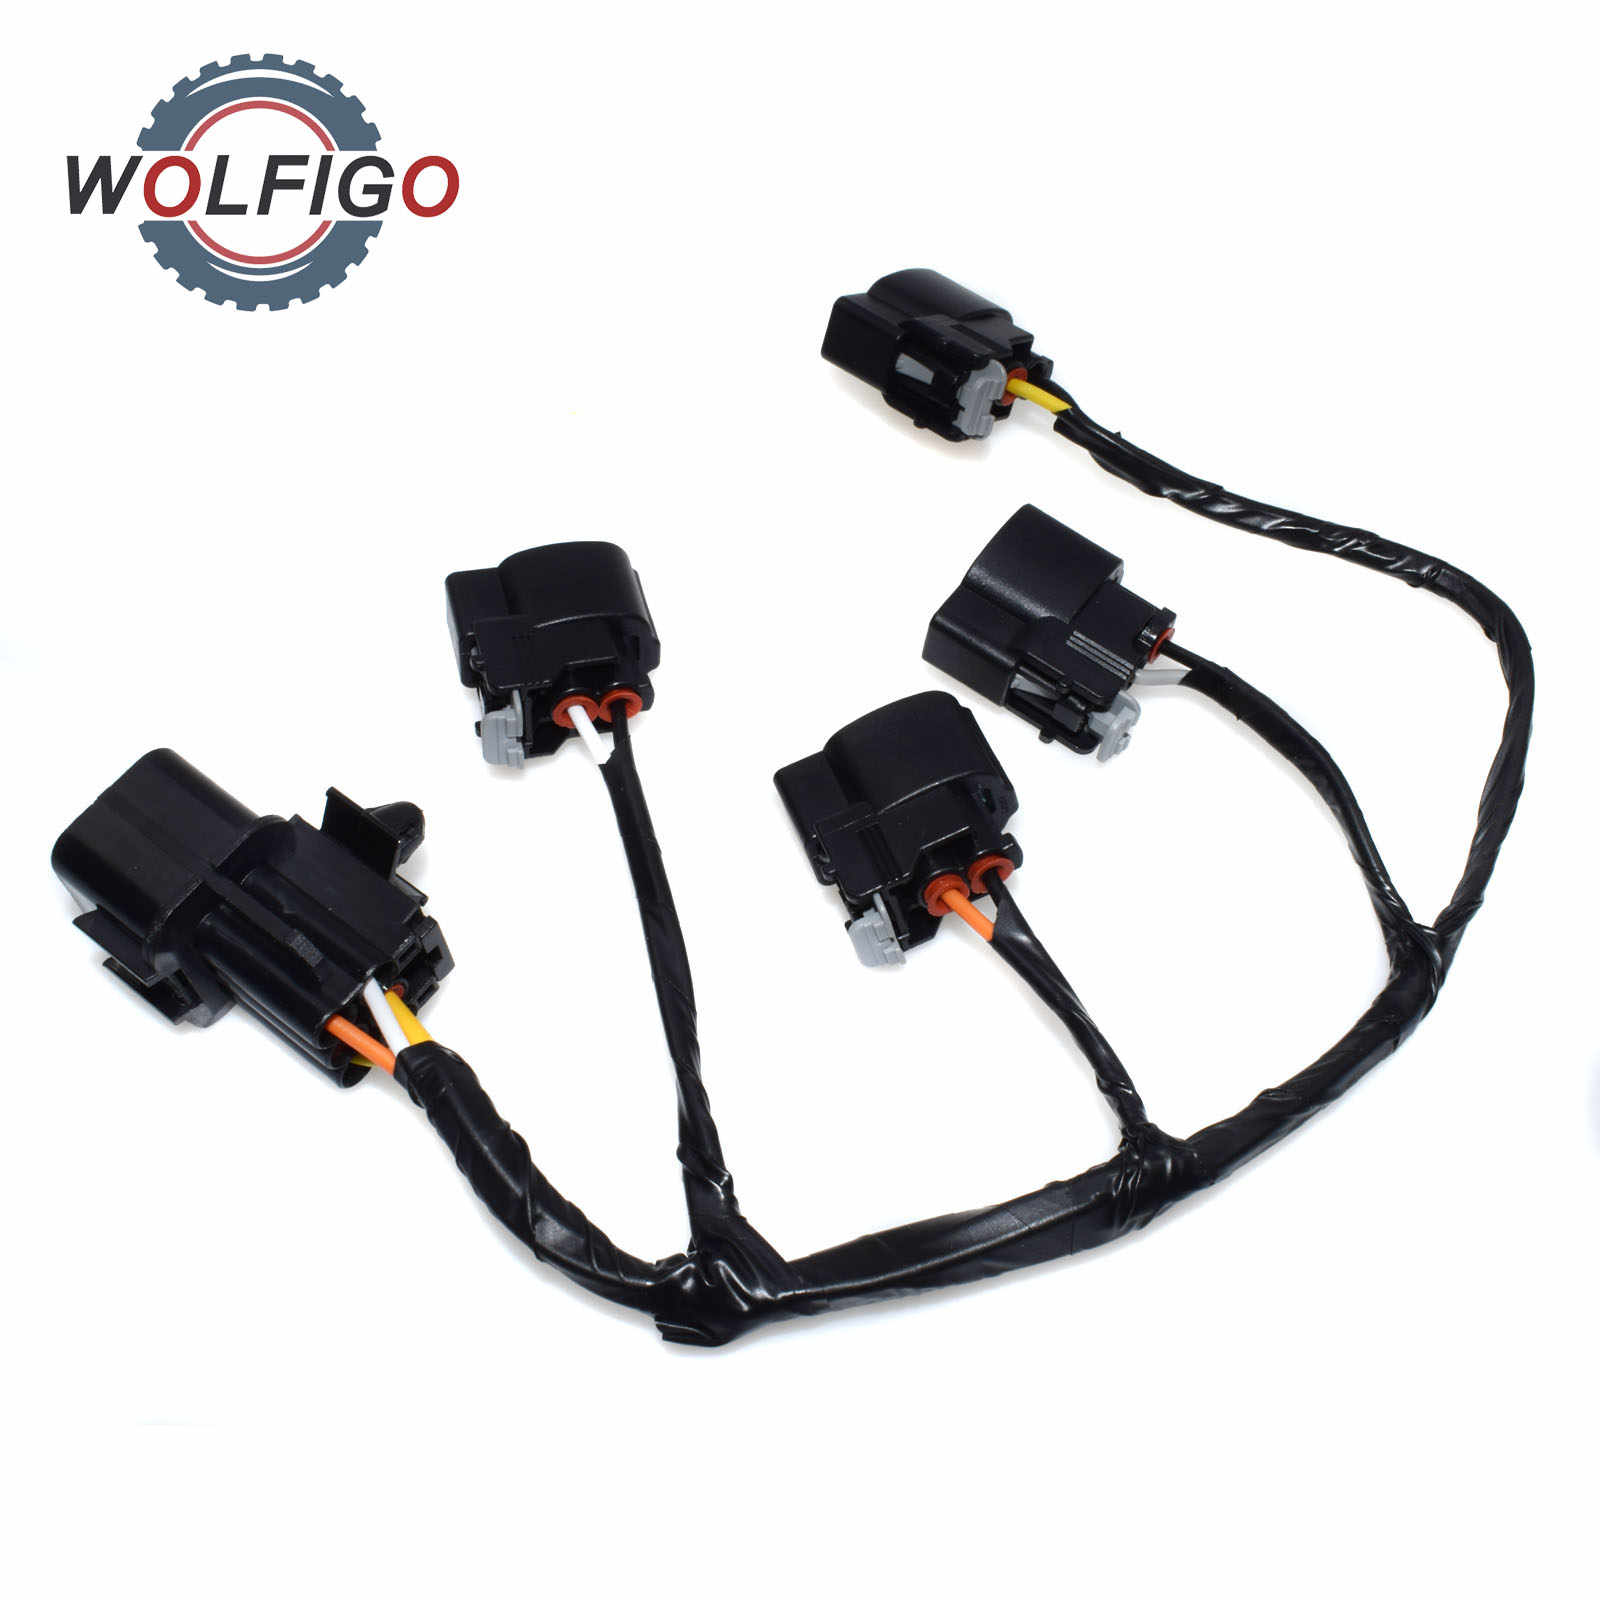 Ignition Coil Wiring Harness - Home Wiring Diagrams on